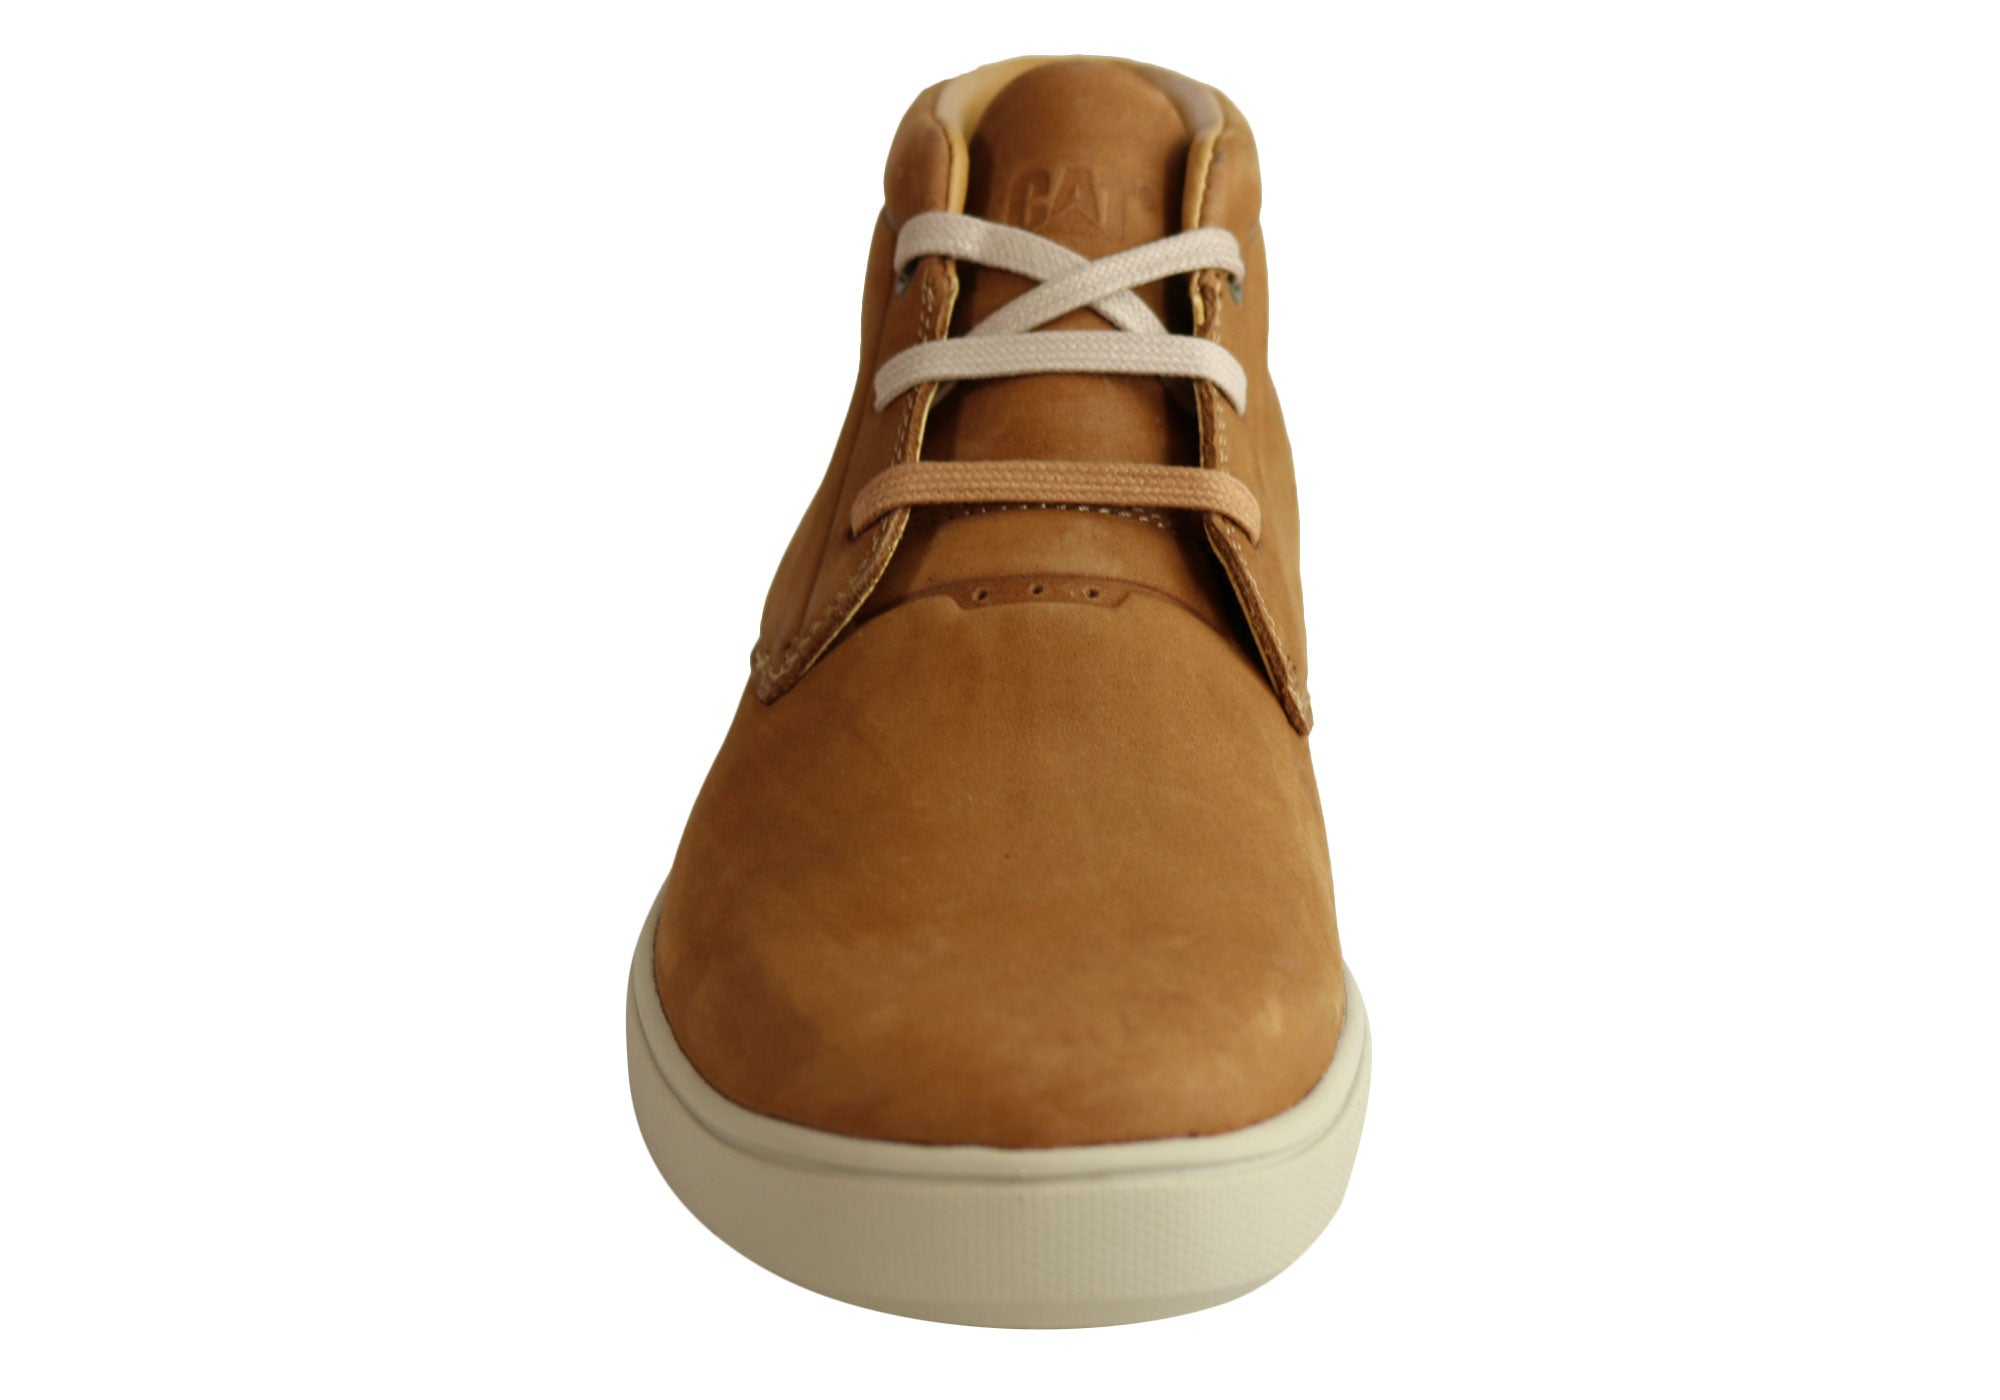 Brand-New-Caterpillar-Theorem-Mens-Lace-Up-Leather-Comfortable-Casual-Boots thumbnail 11